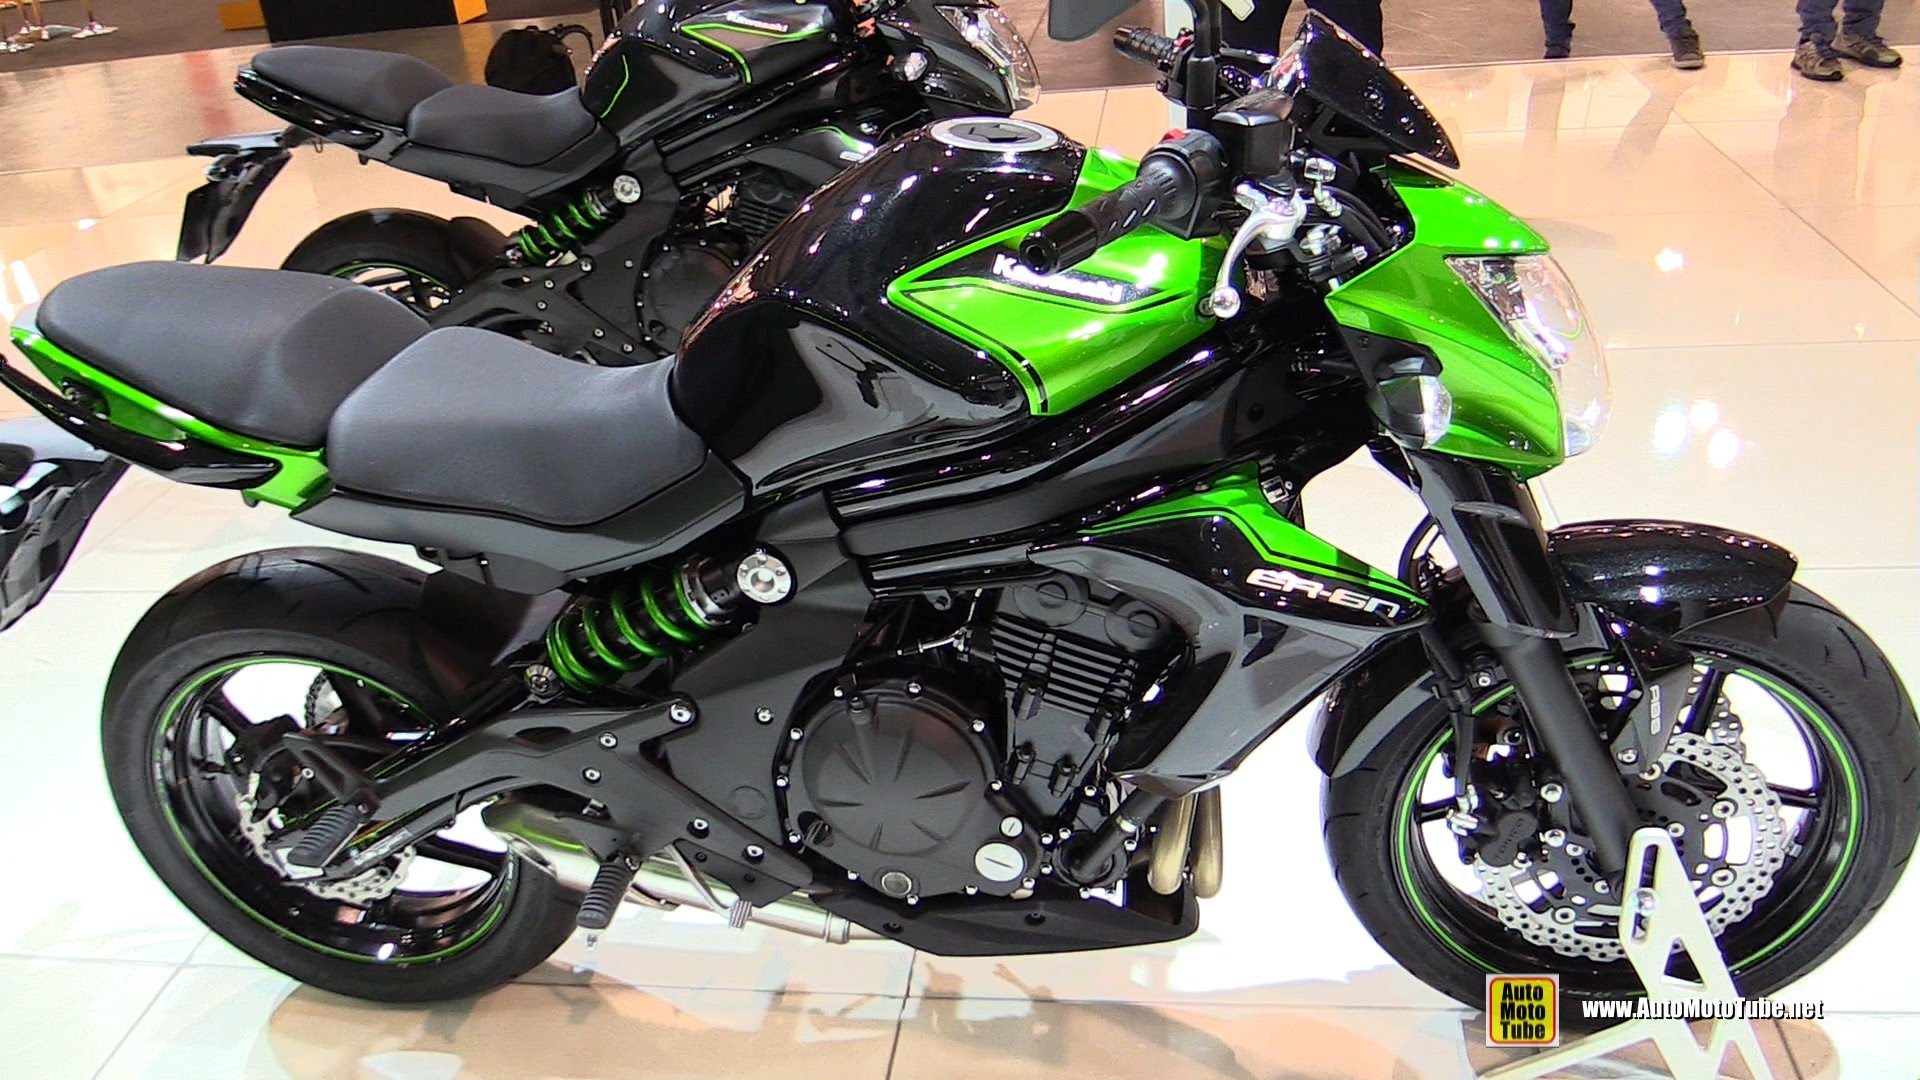 2010 kawasaki er 6f abs pics specs and information. Black Bedroom Furniture Sets. Home Design Ideas